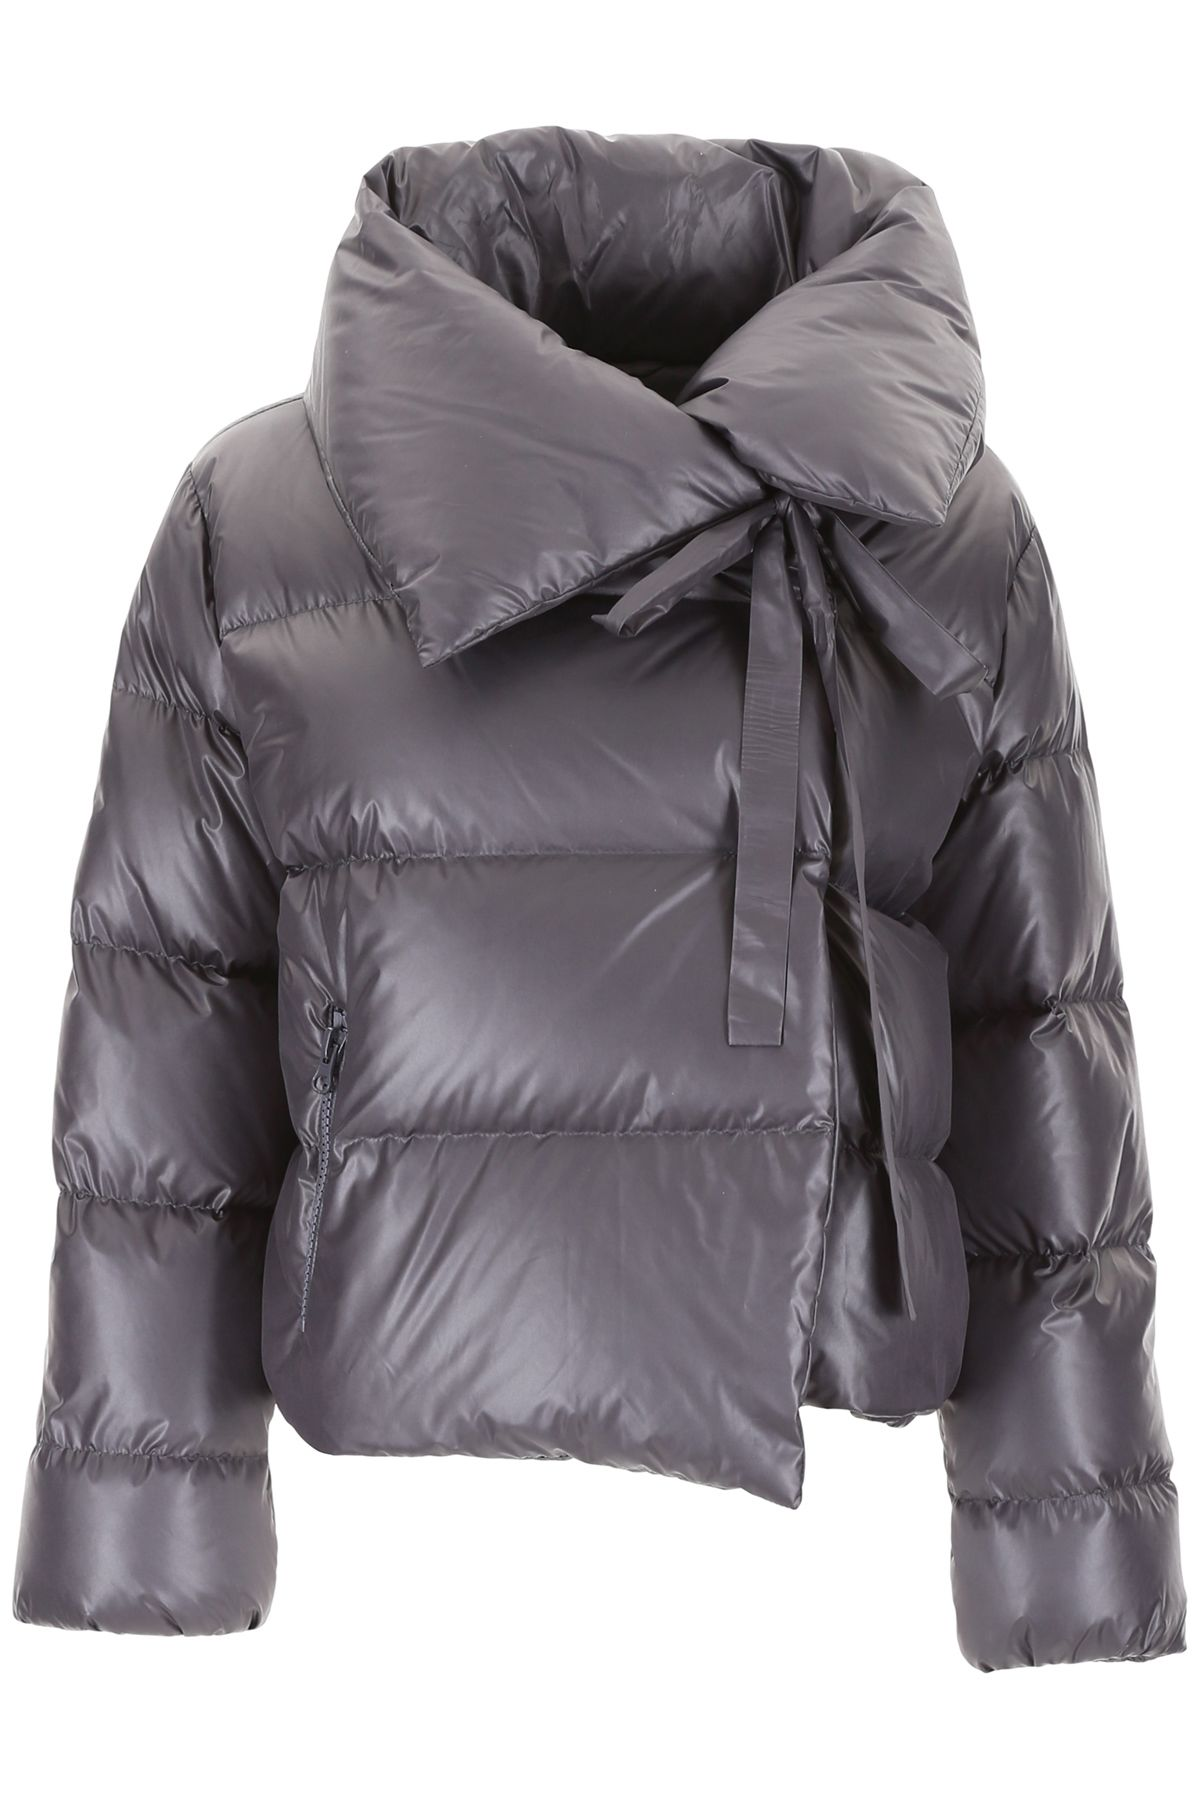 BACON CLOTHING Puffer Jacket With Bow in Grey